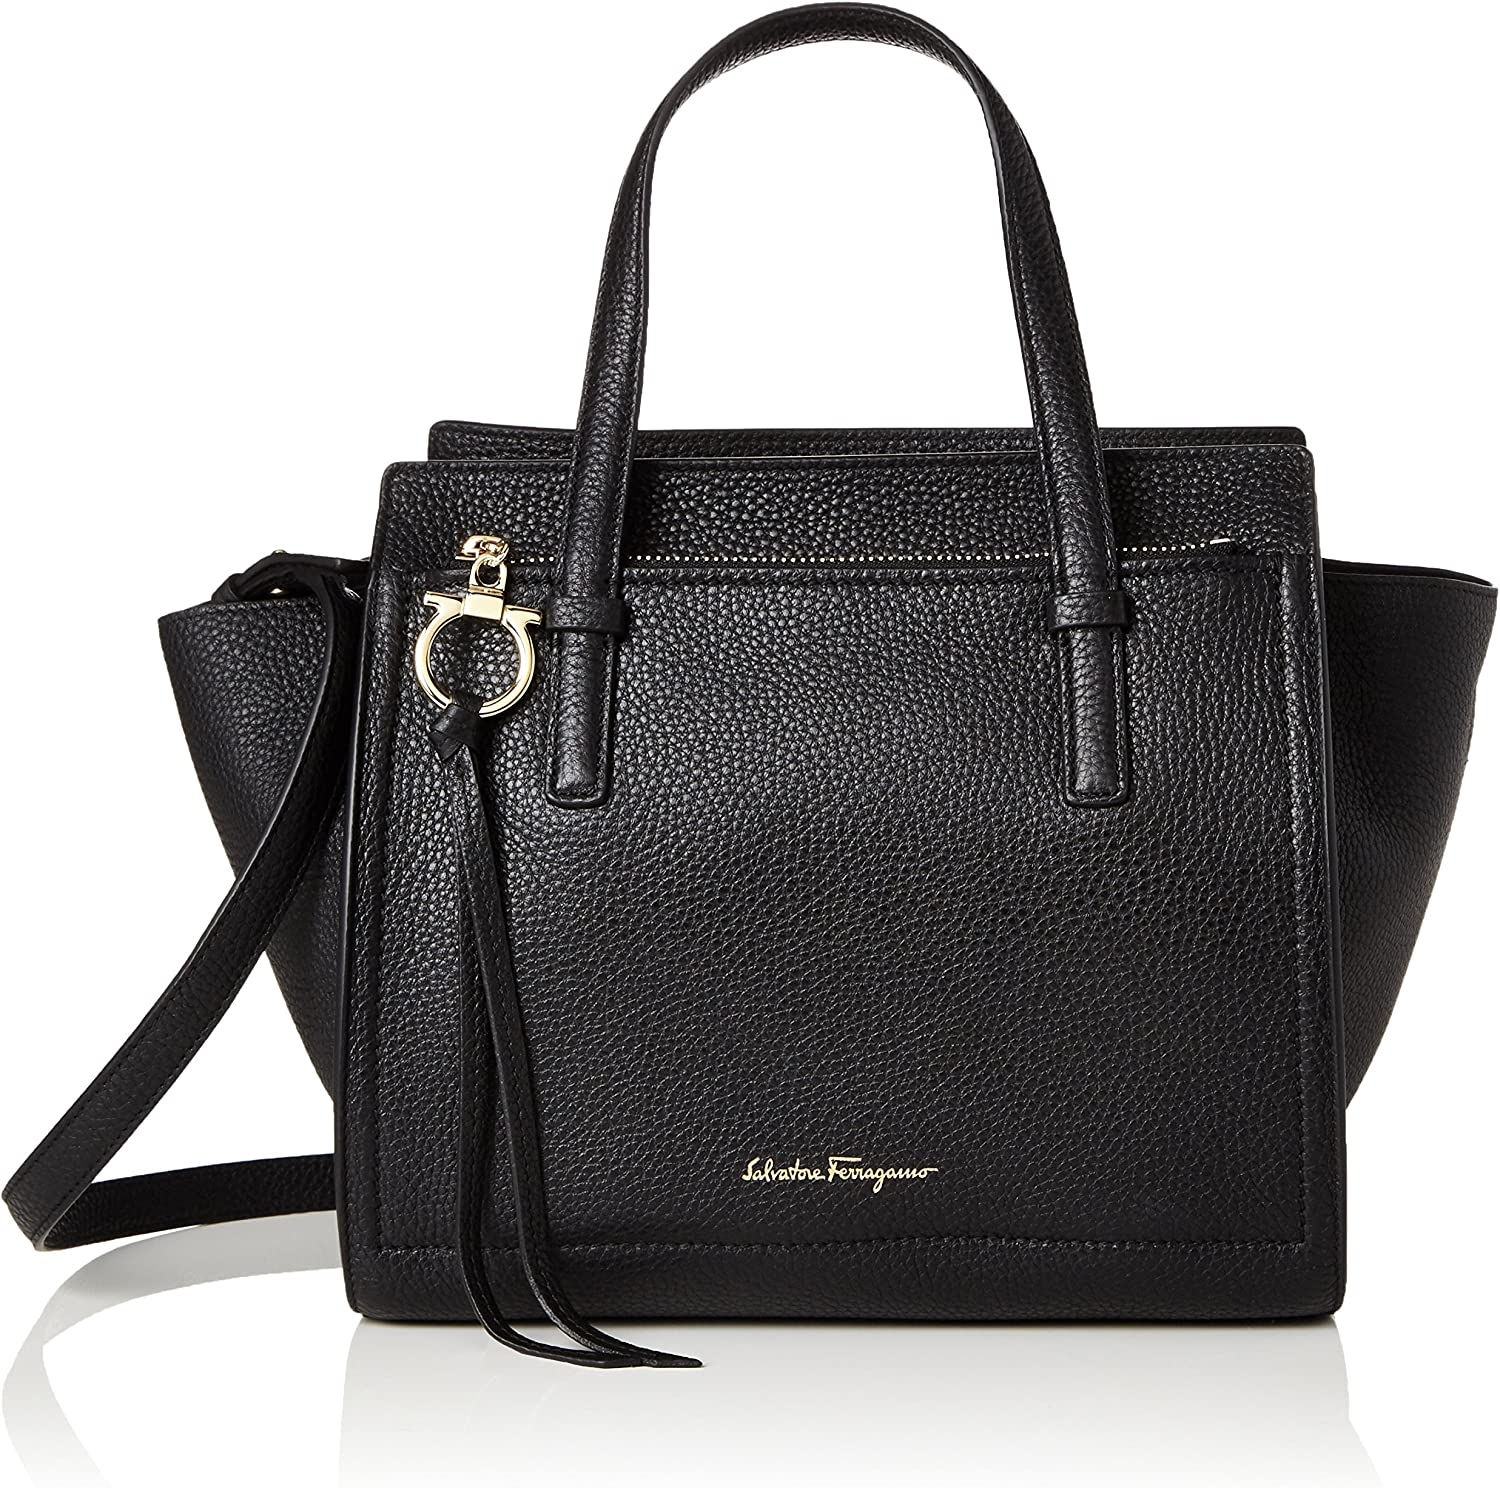 SALVATORE FERRAGAMO Amy